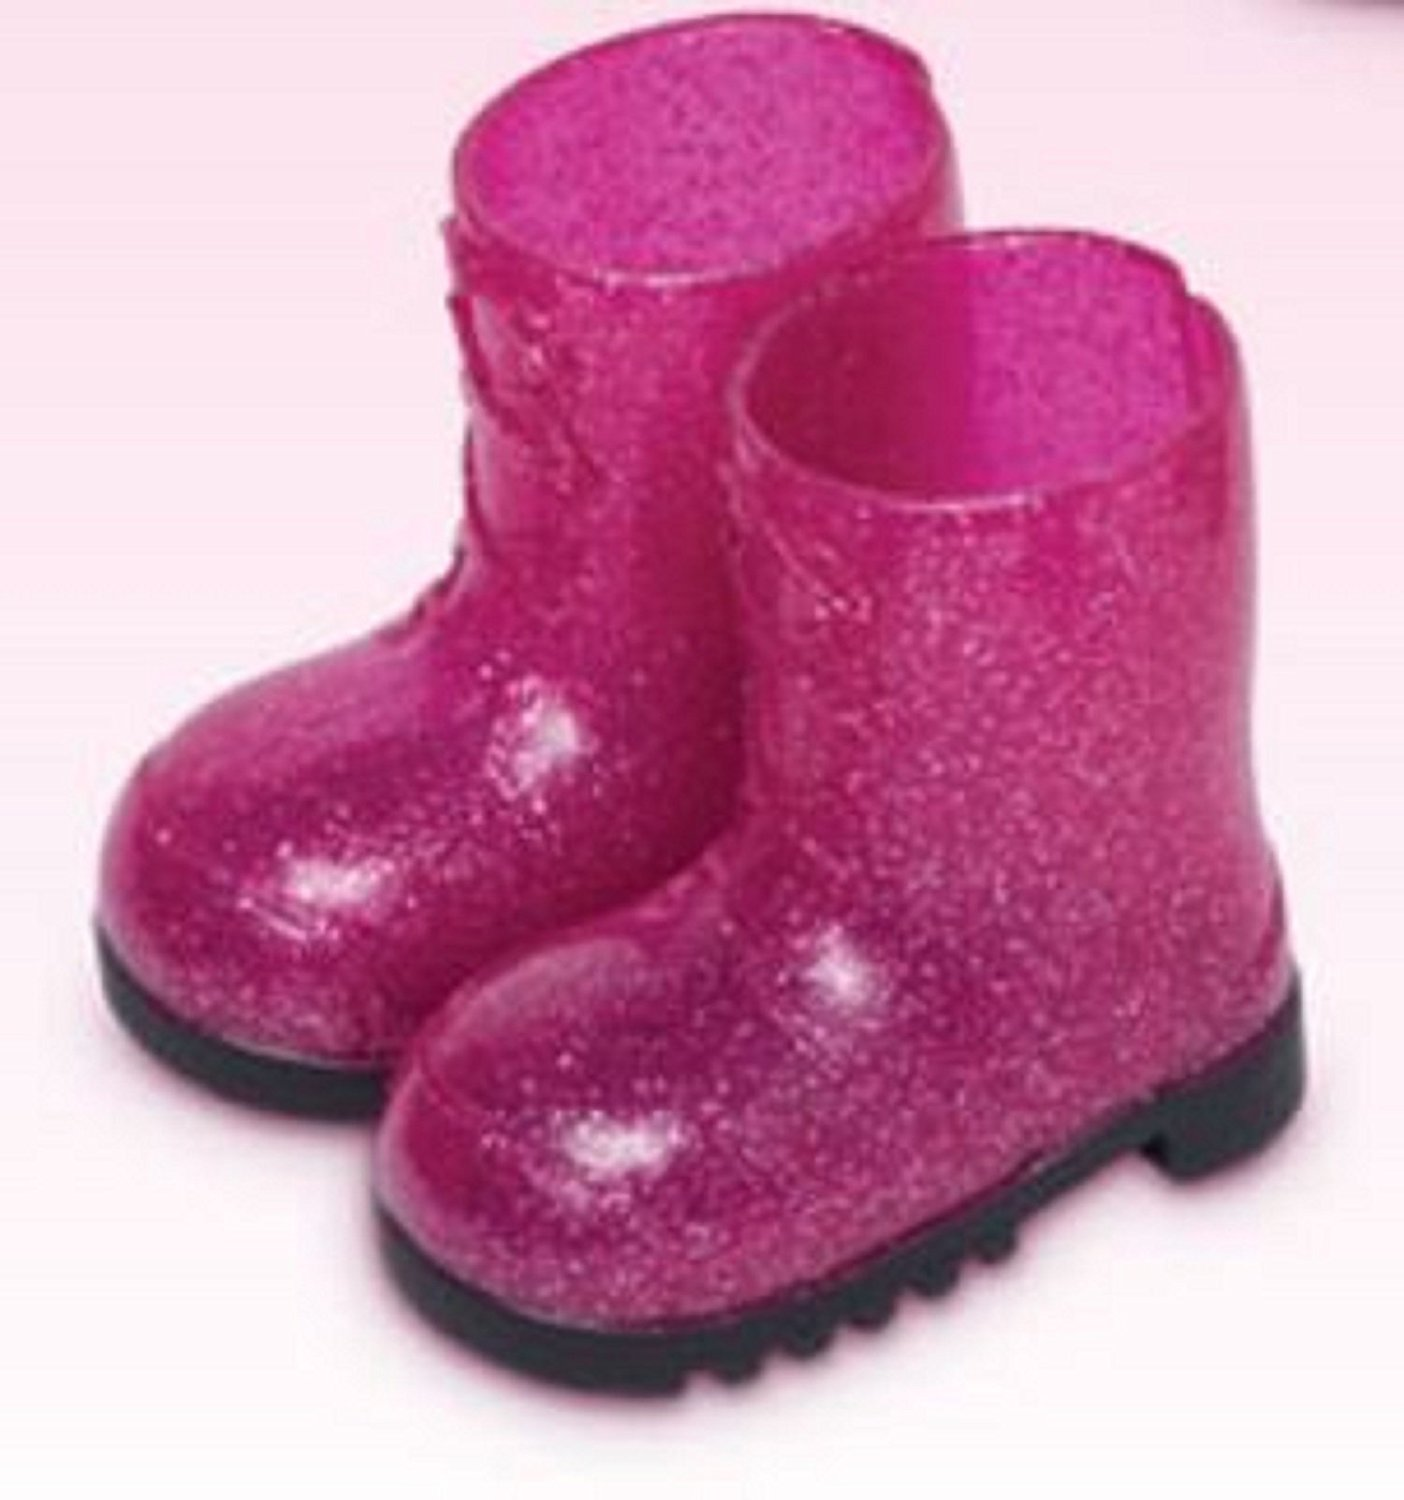 """My Life As - Pink Glitter Boots for 18"""" Doll [Doll NOT Included]"""